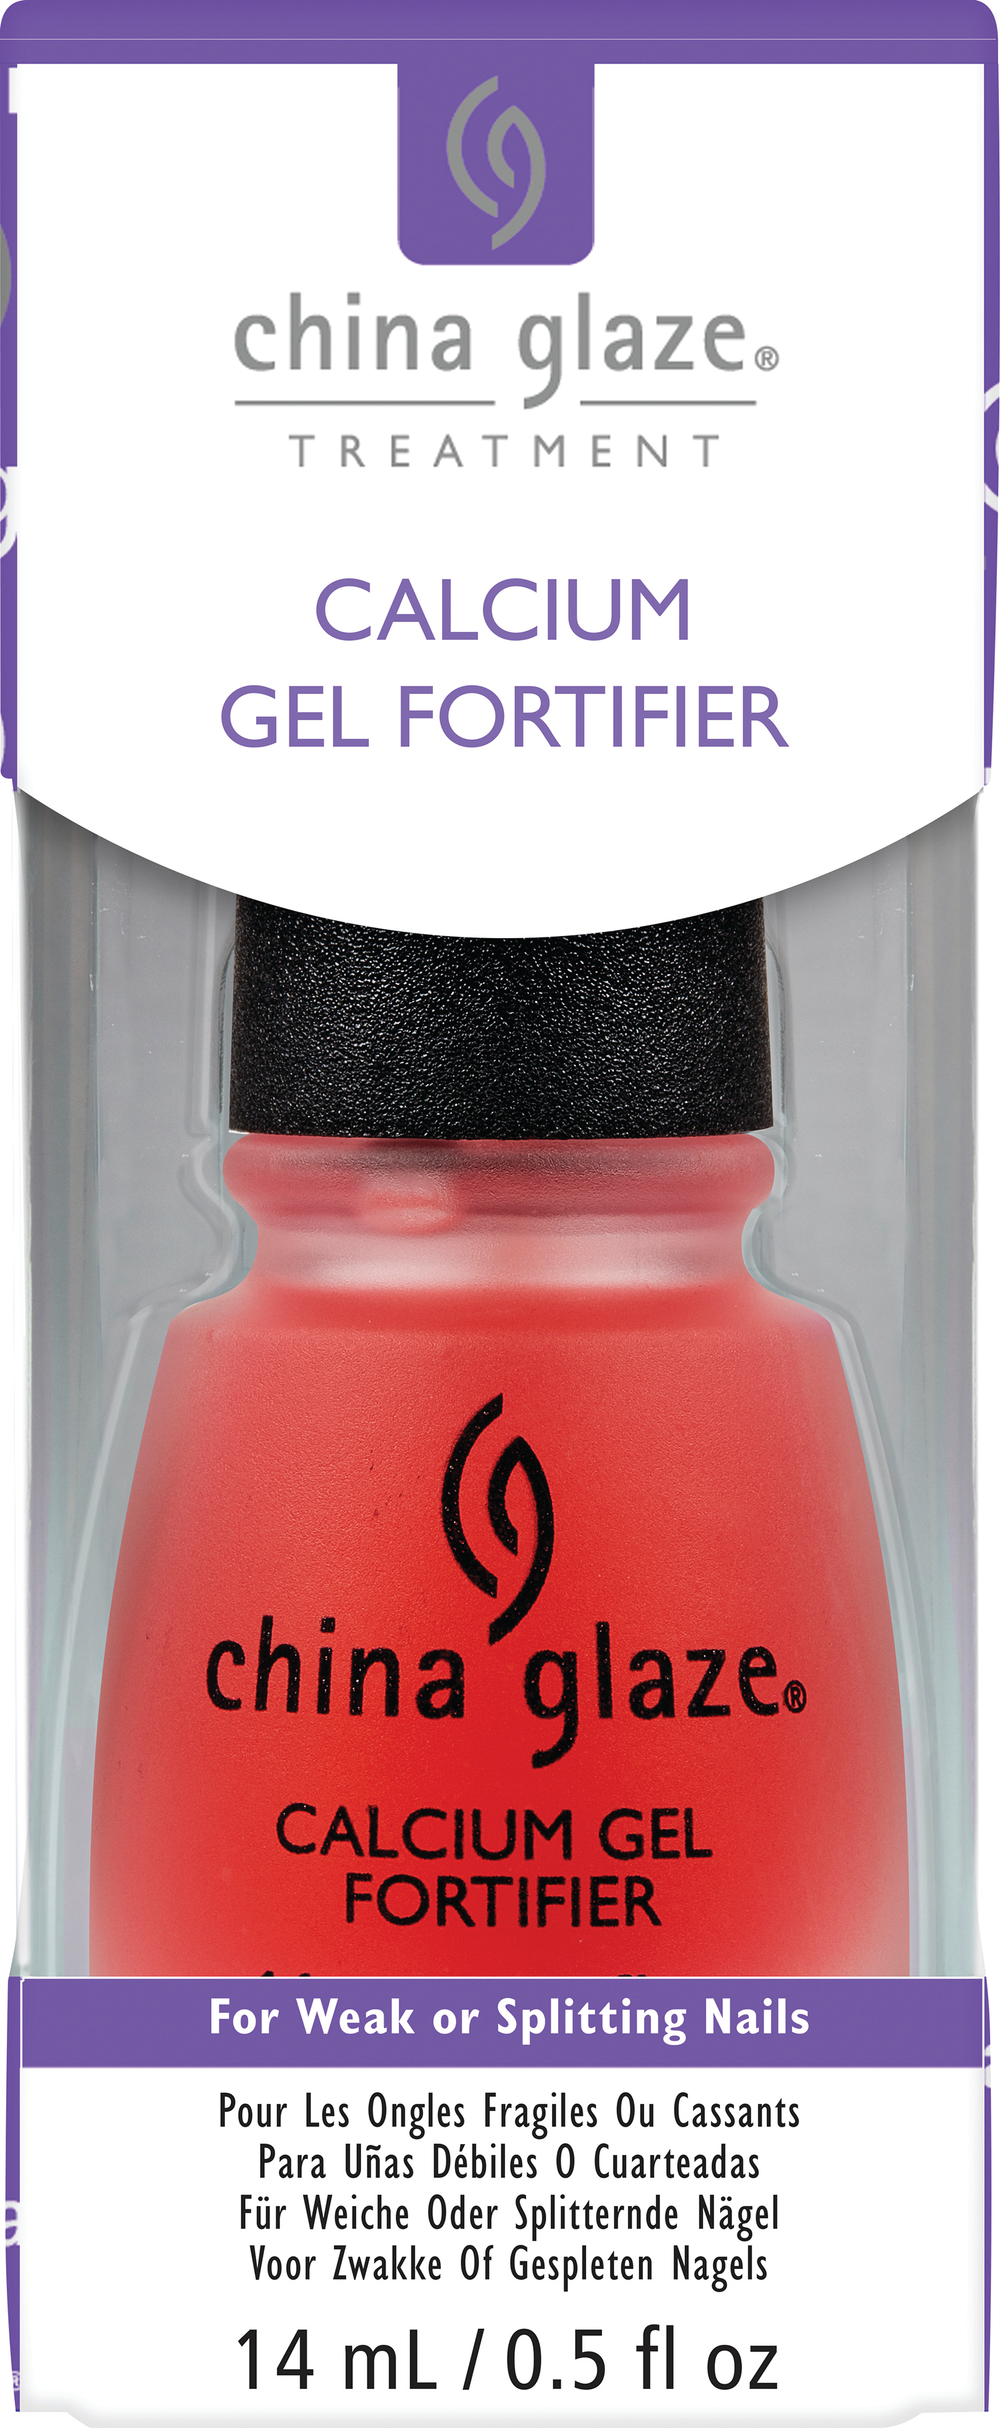 """<p>For those who experience weak or splitting nails, China Glaze Calcium Gel Fortifier provides a more substantial coating than a typical nail strengthener. Its special blend of Vitamin B3, Vitamin B5, and wheat protein supplies the nail with the nutrients required to strengthen and protect against splitting and cracking, promoting the growth of healthy, beautiful nails in just eight weeks. <br /><a href=""""http://www.chinaglaze.com"""">www.chinaglaze.com</a></p>"""